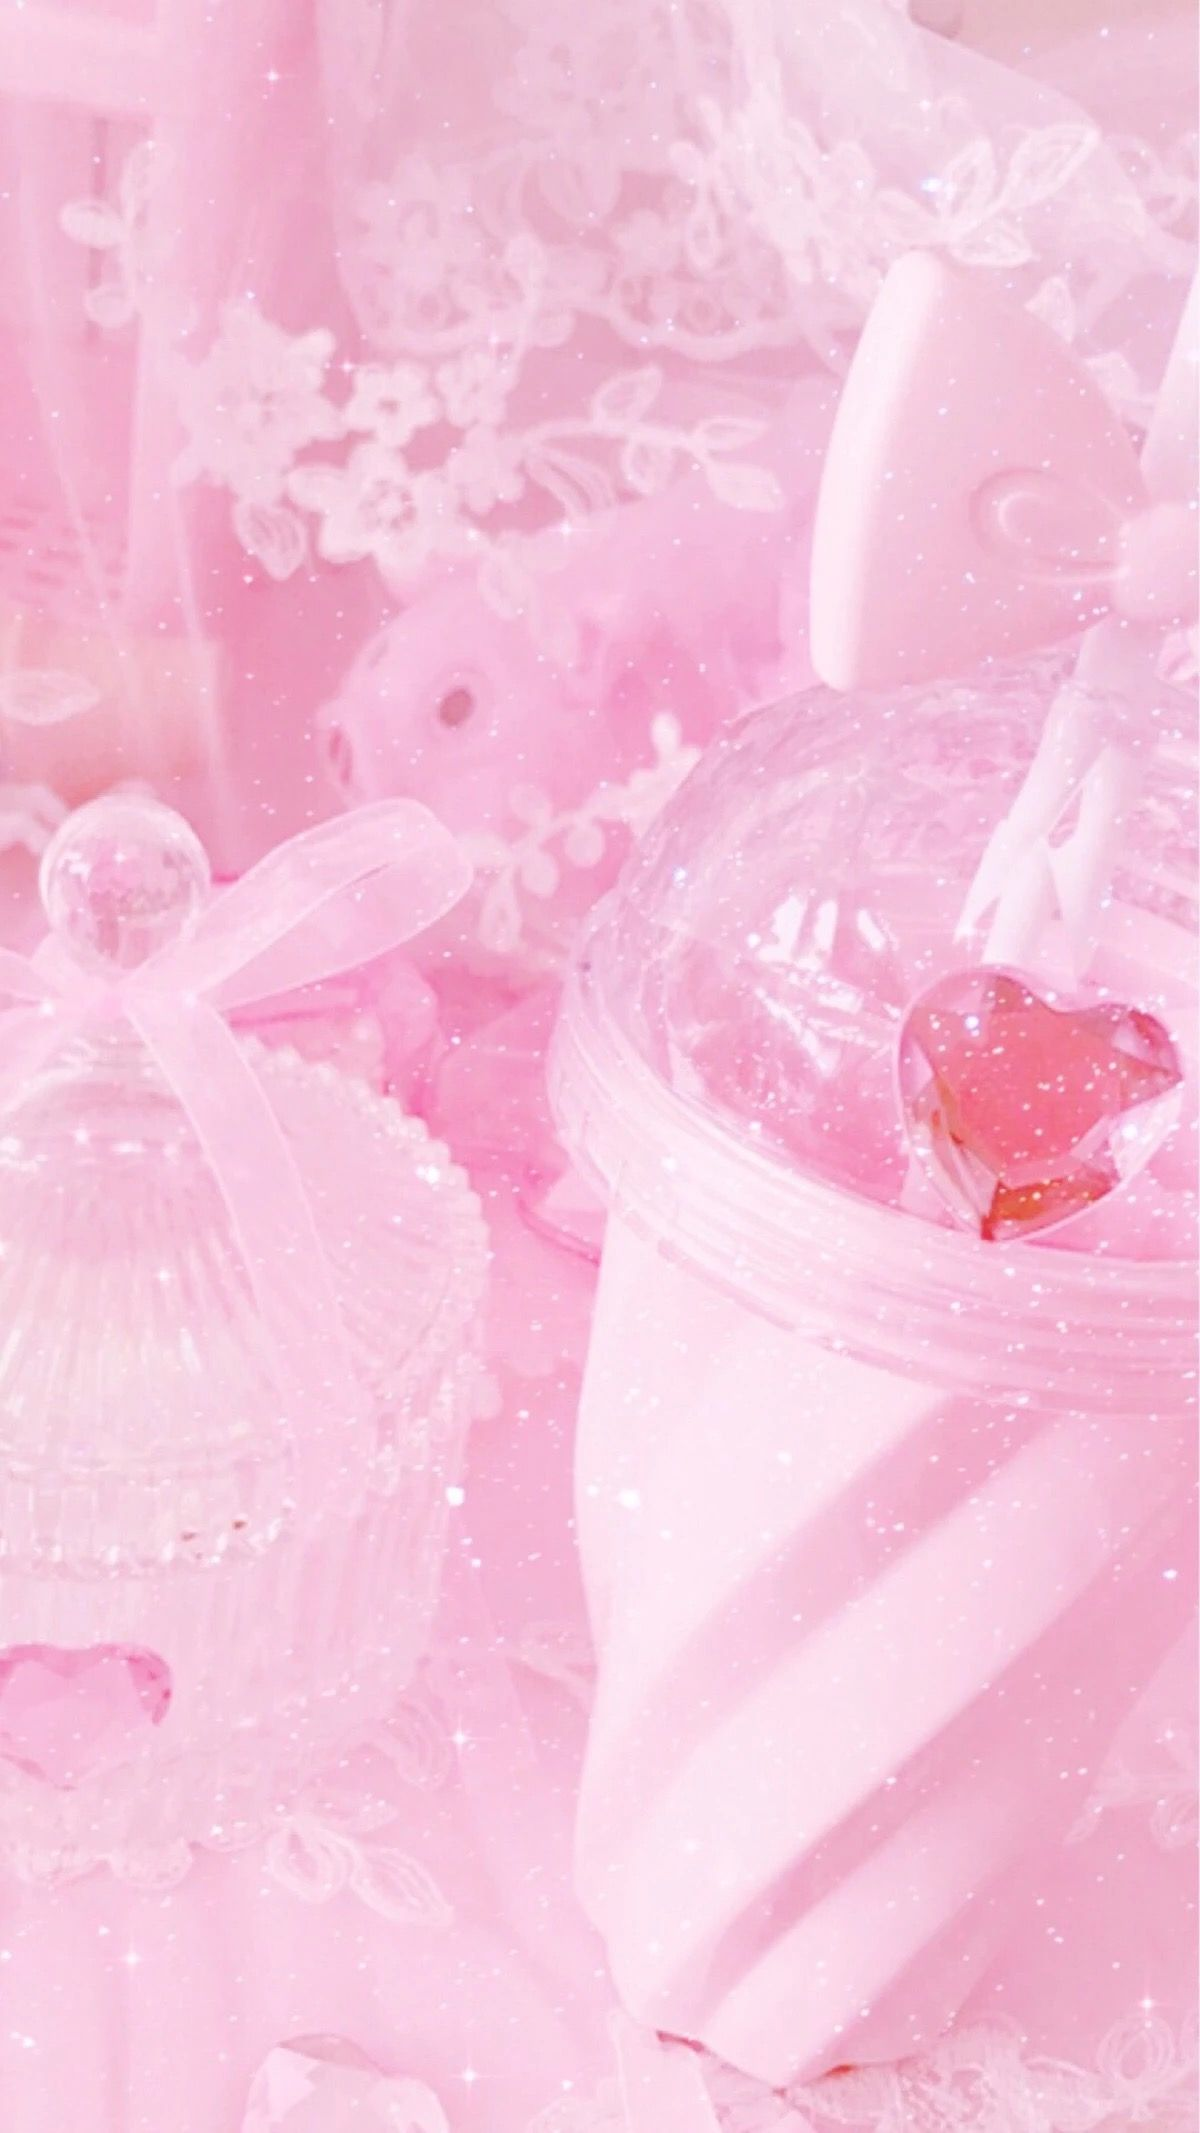 Aesthetic Pastel Pink Background